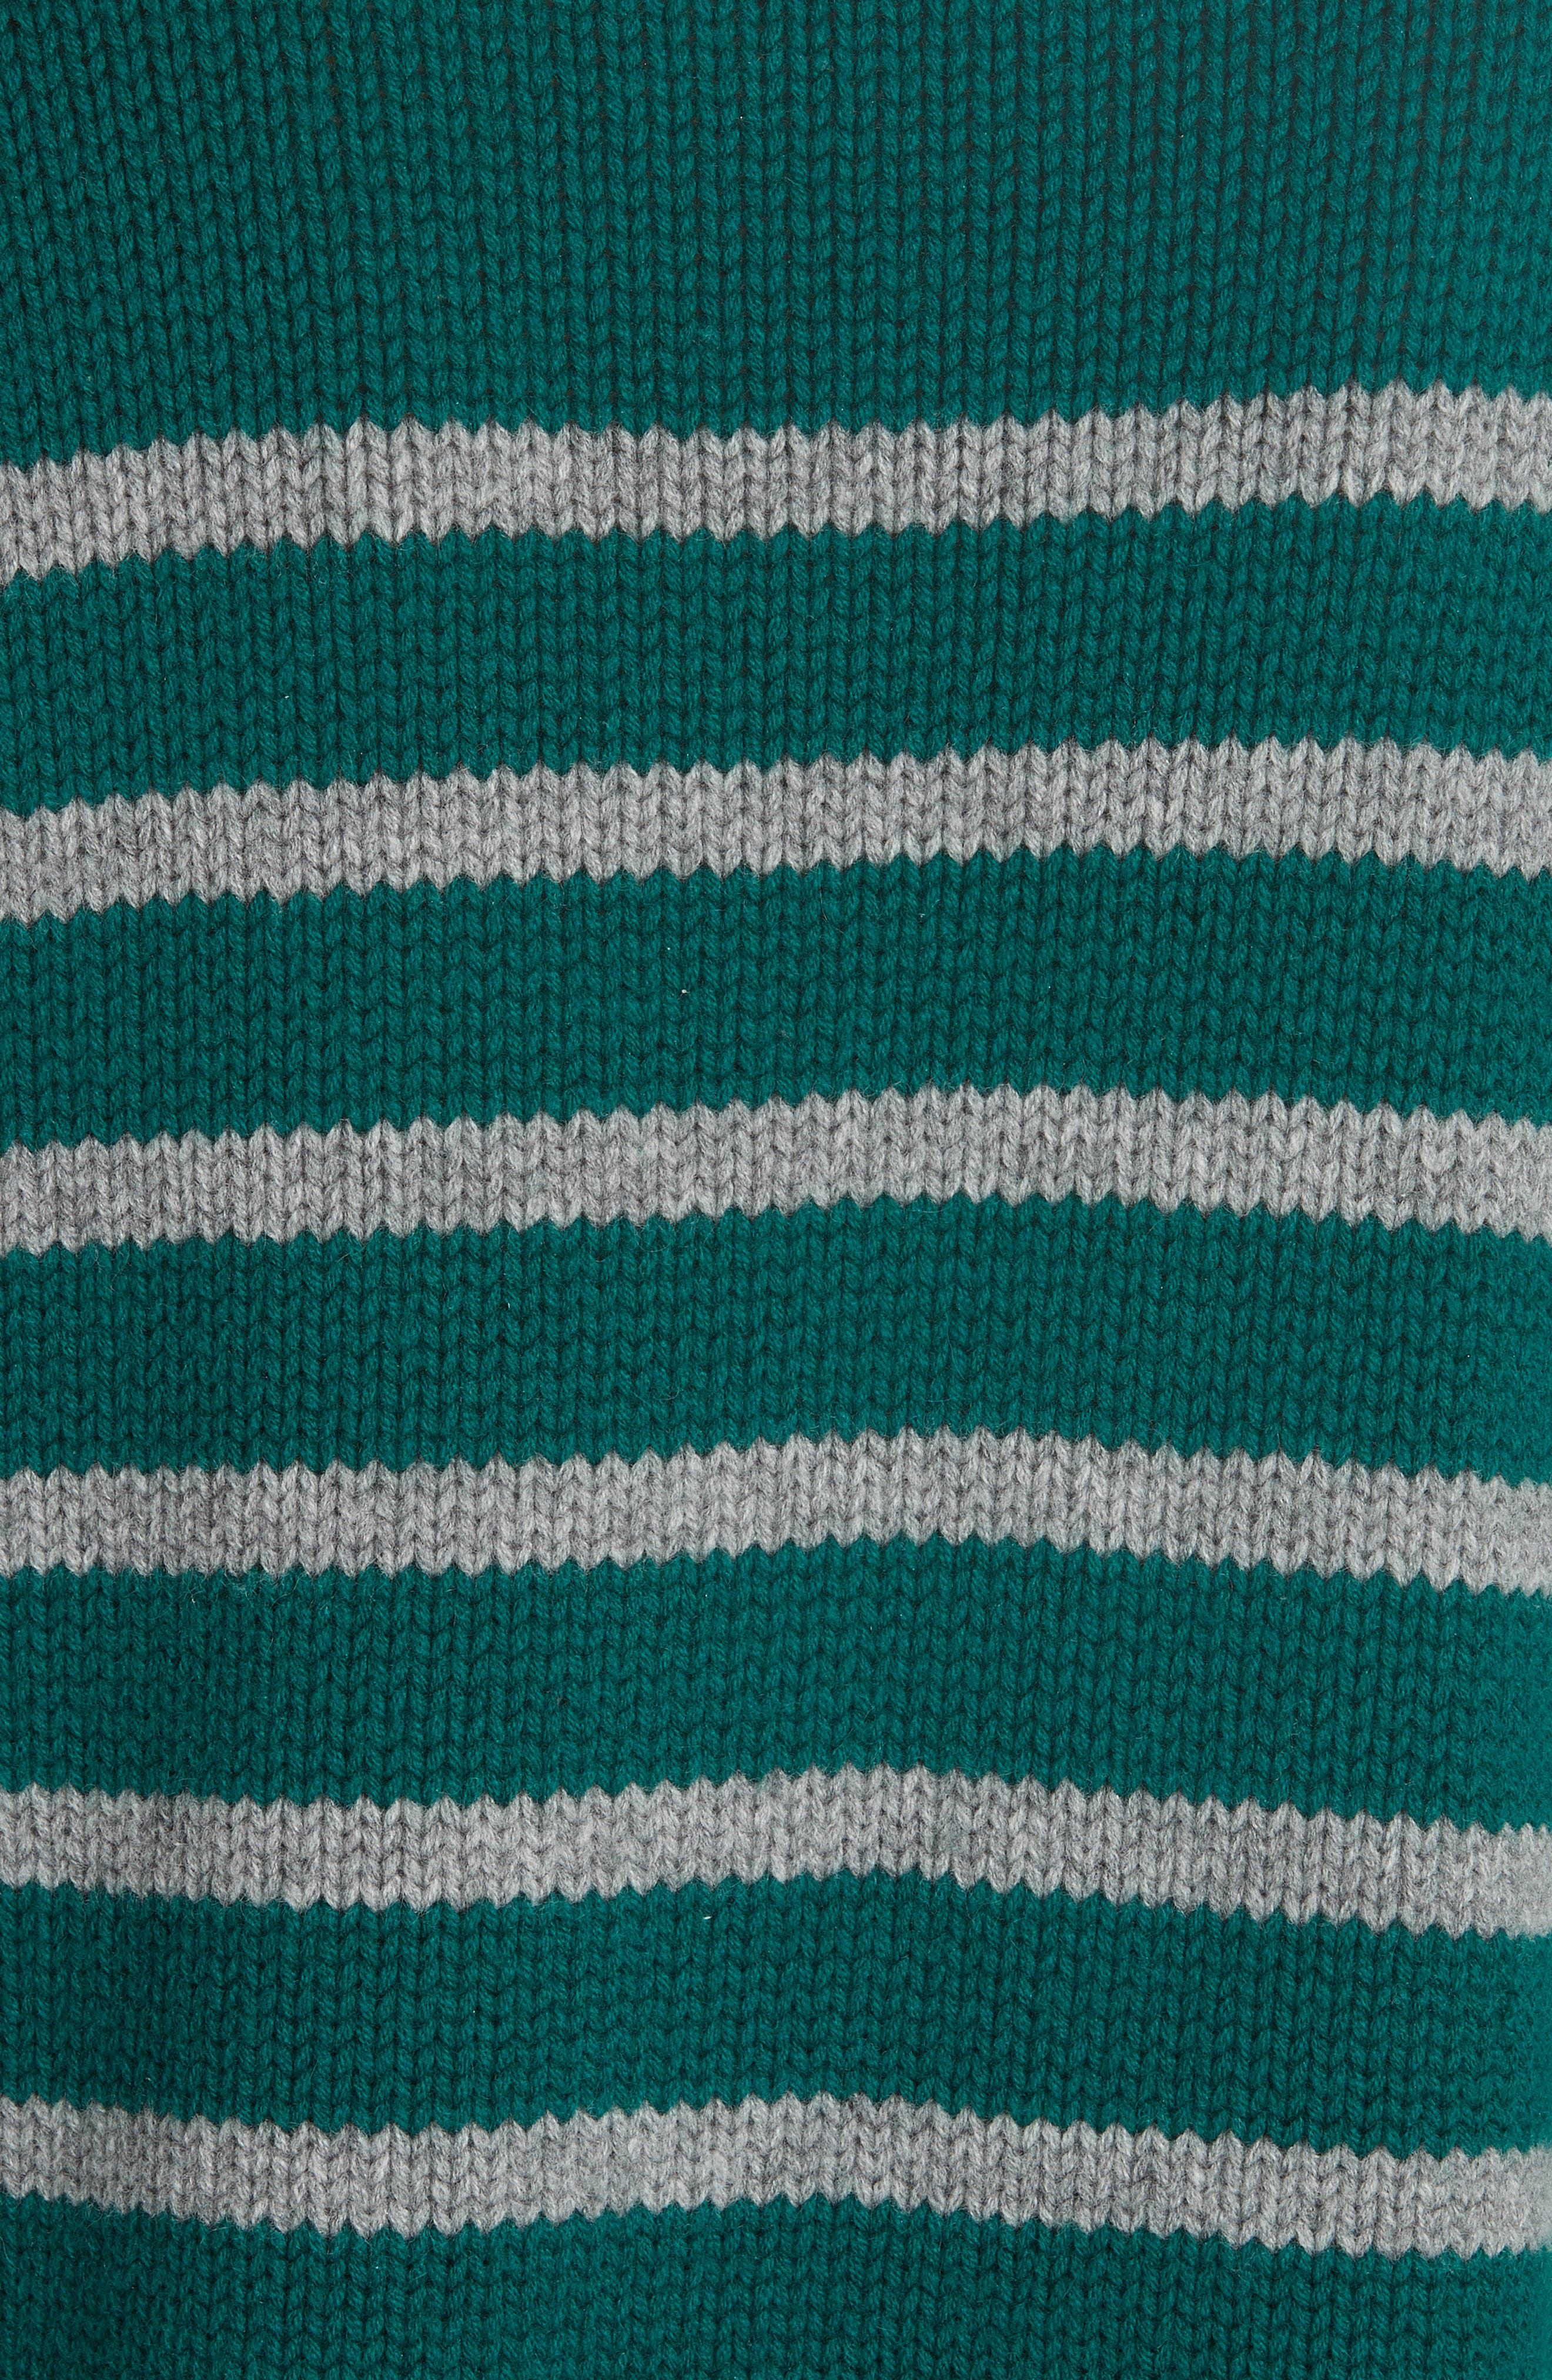 Marin Wool & Cashmere Sweater,                             Alternate thumbnail 5, color,                             FOREST GREEN/ GREY MARLE